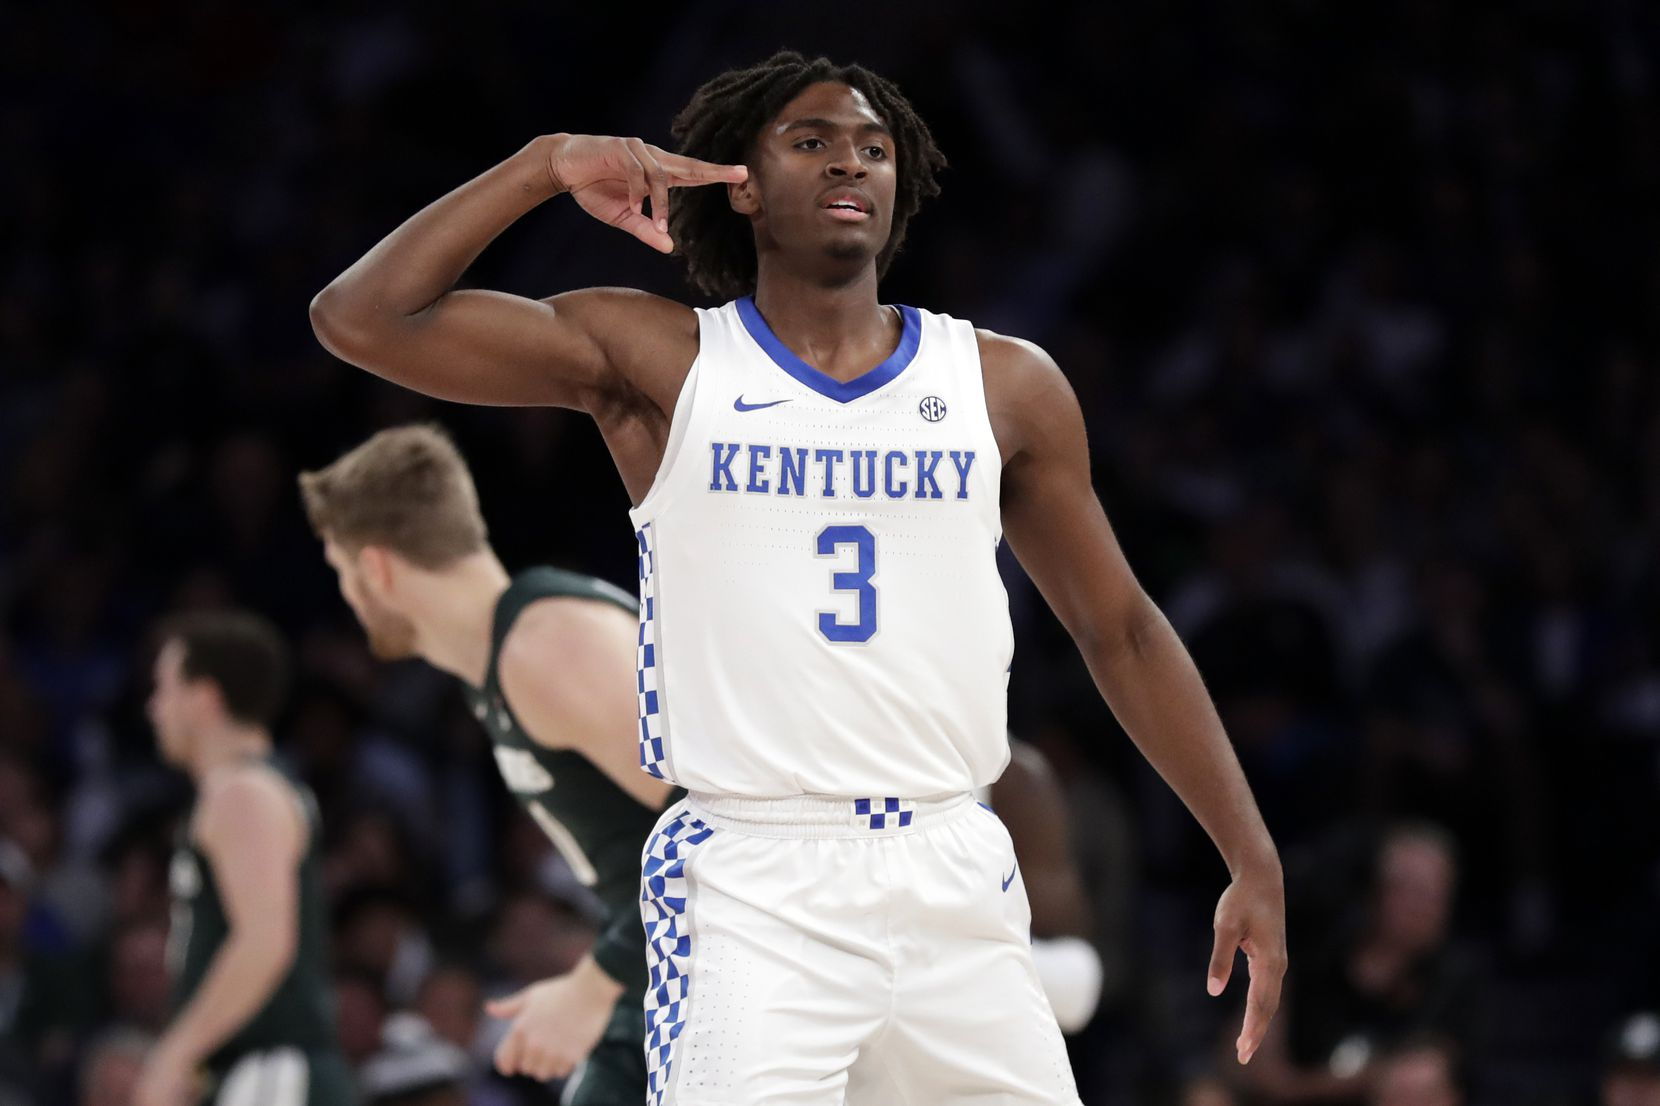 Kentucky guard Tyrese Maxey (3) reacts after making a 3-pointer during the first half of a game against Michigan State on Tuesday, Nov. 5, 2019, in New York.